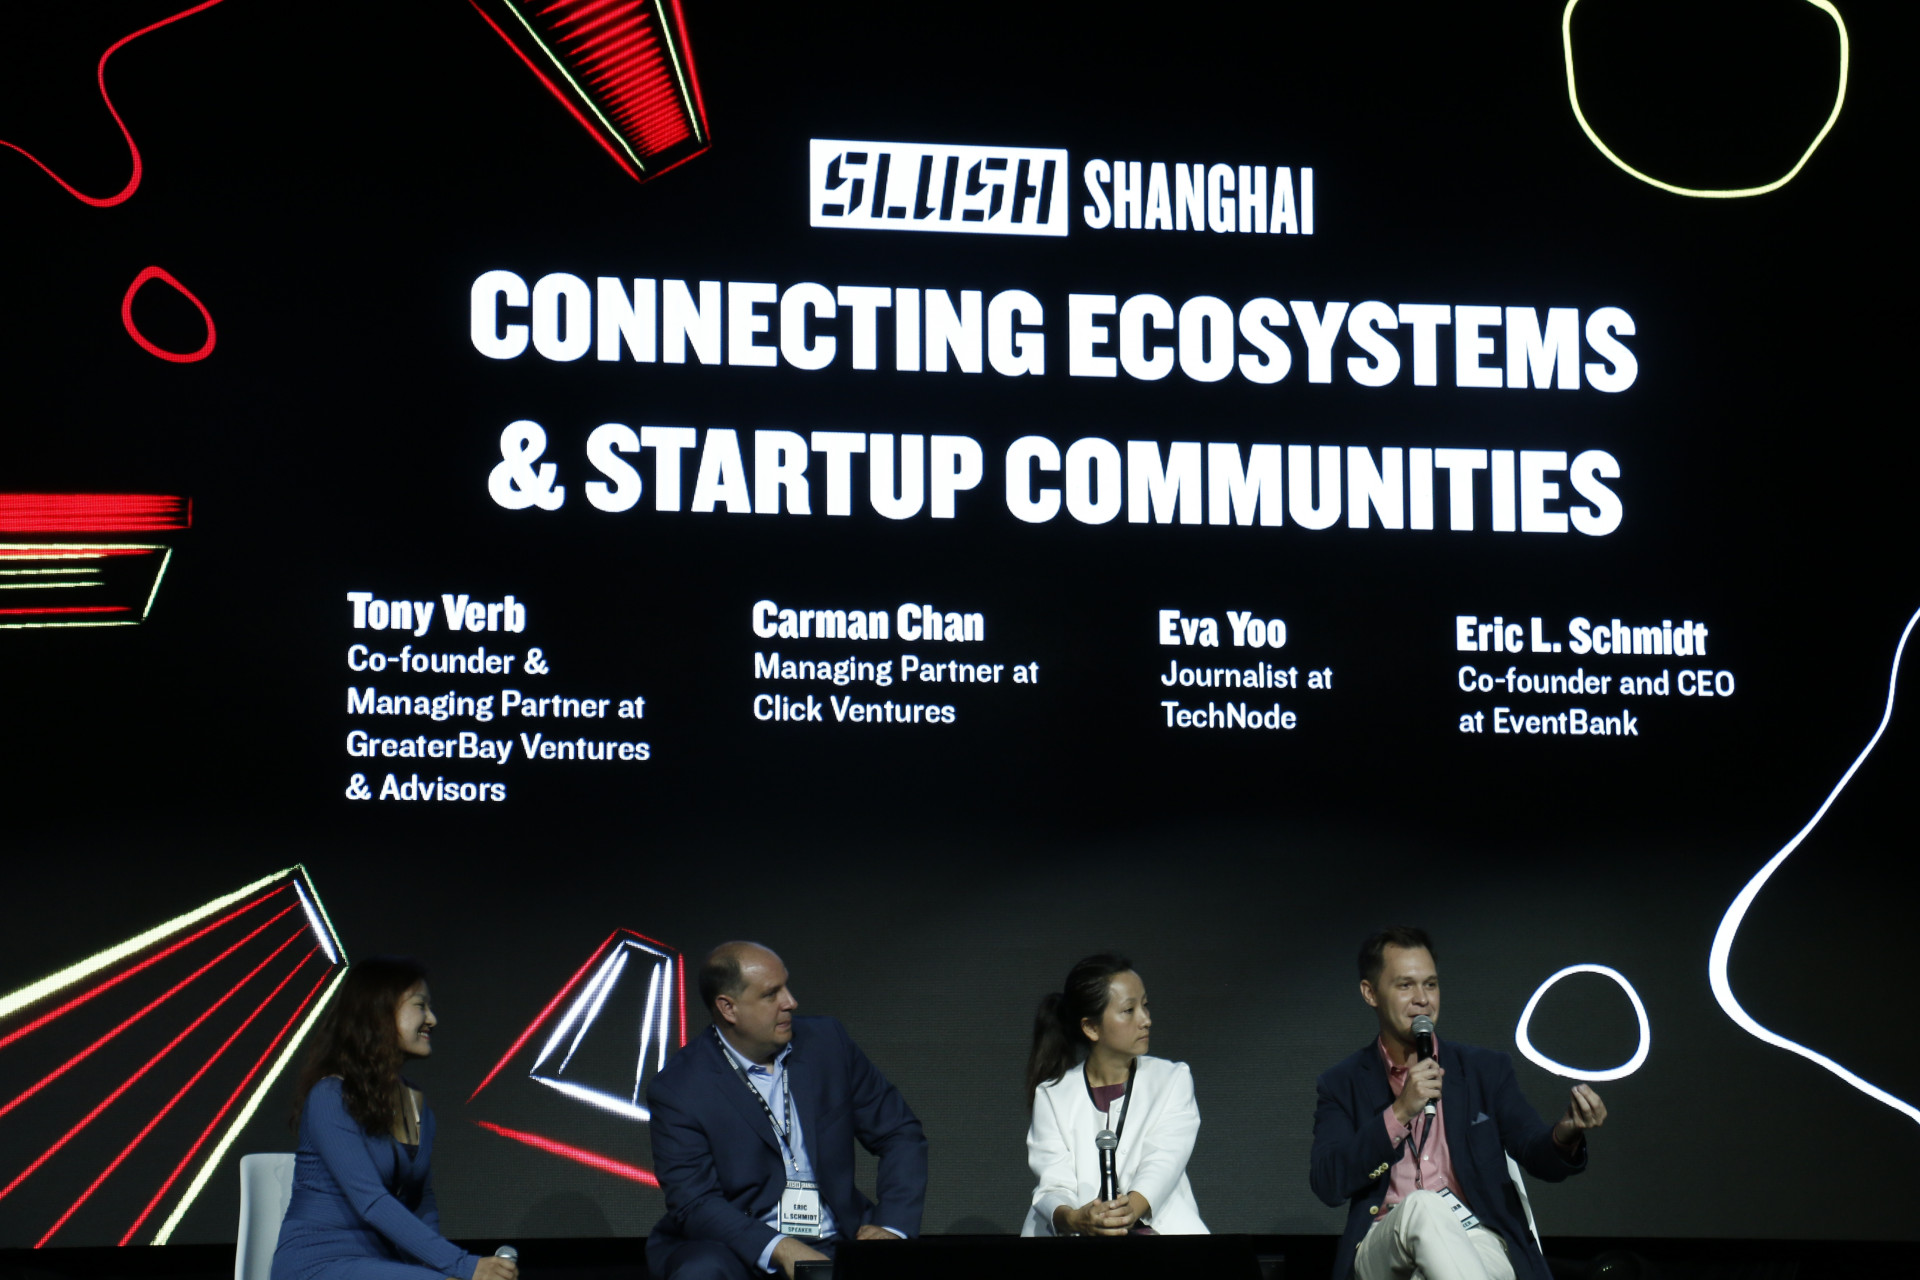 Eva Yoo, Eric Schmidt, Carman Chan, and Tony Verb at Slush Shanghai